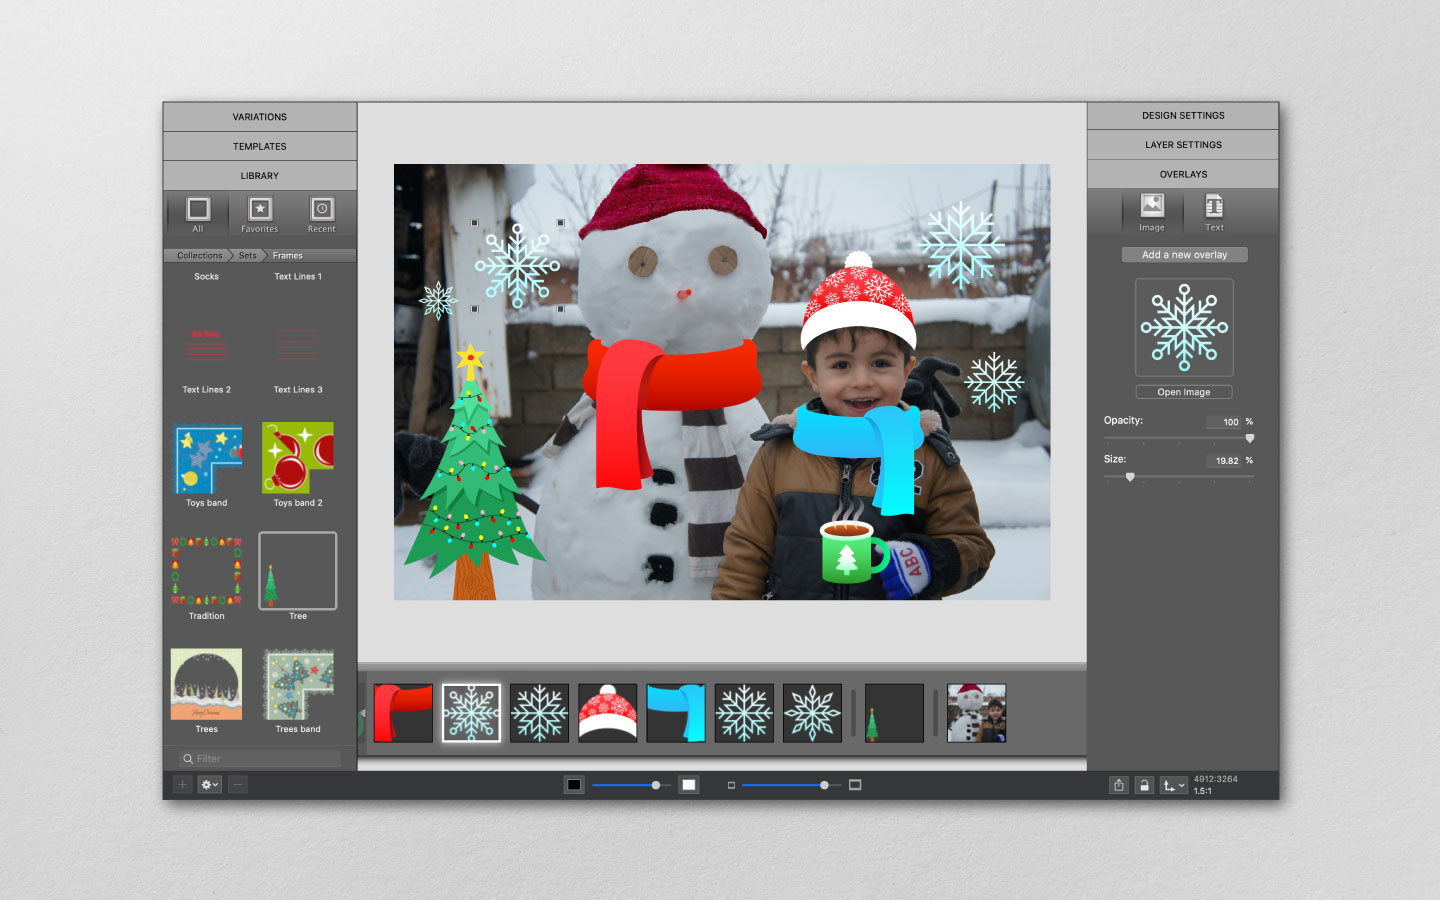 How to use digital stickers in ImageFramer